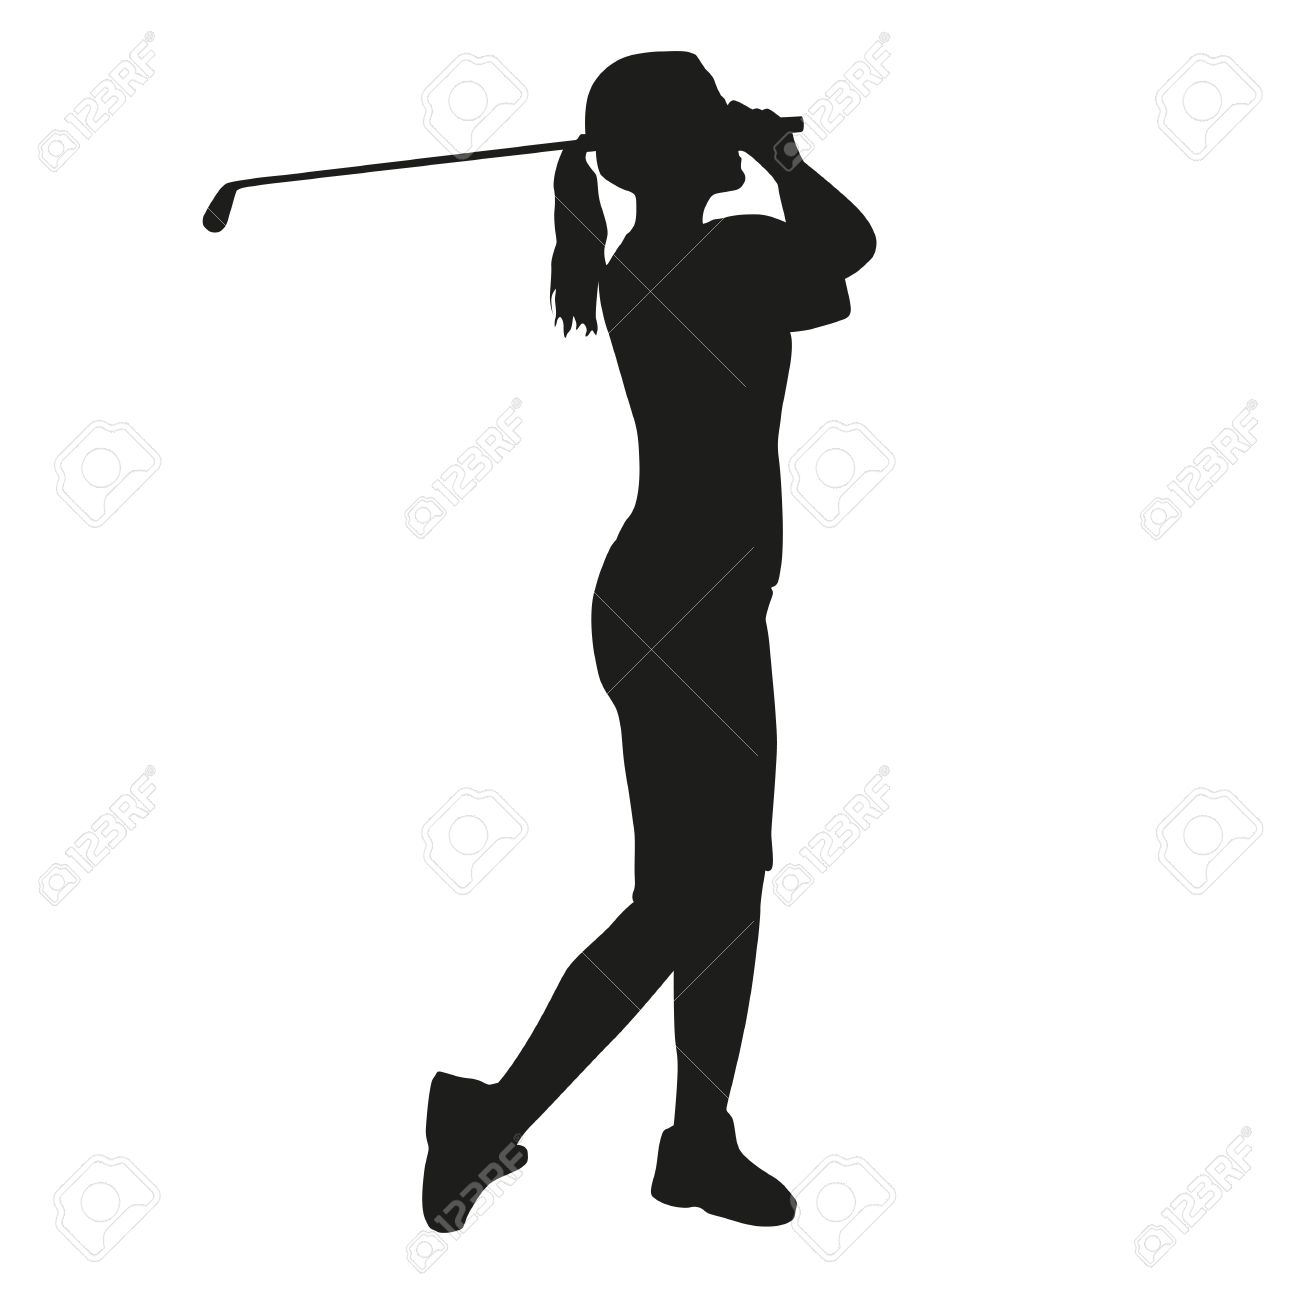 Woman Golfer Silhouette Royalty Free Cliparts Vectors And Stock